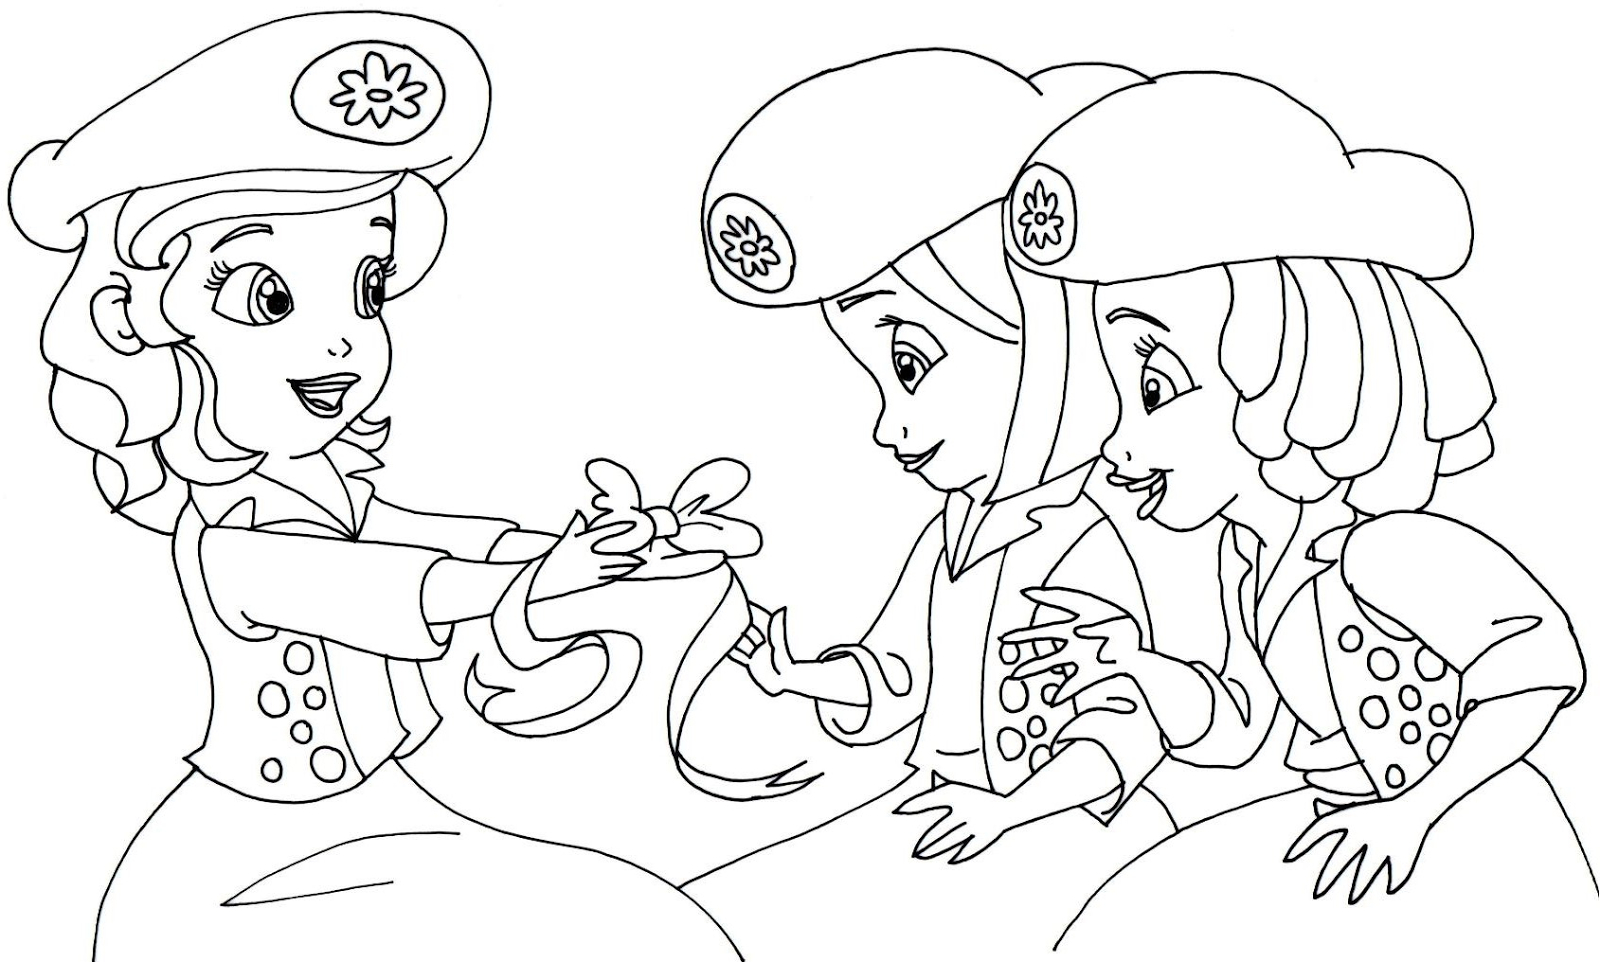 Sofia The First Coloring Page Sofia The First Coloring Pages Sofia First Coloring Pages